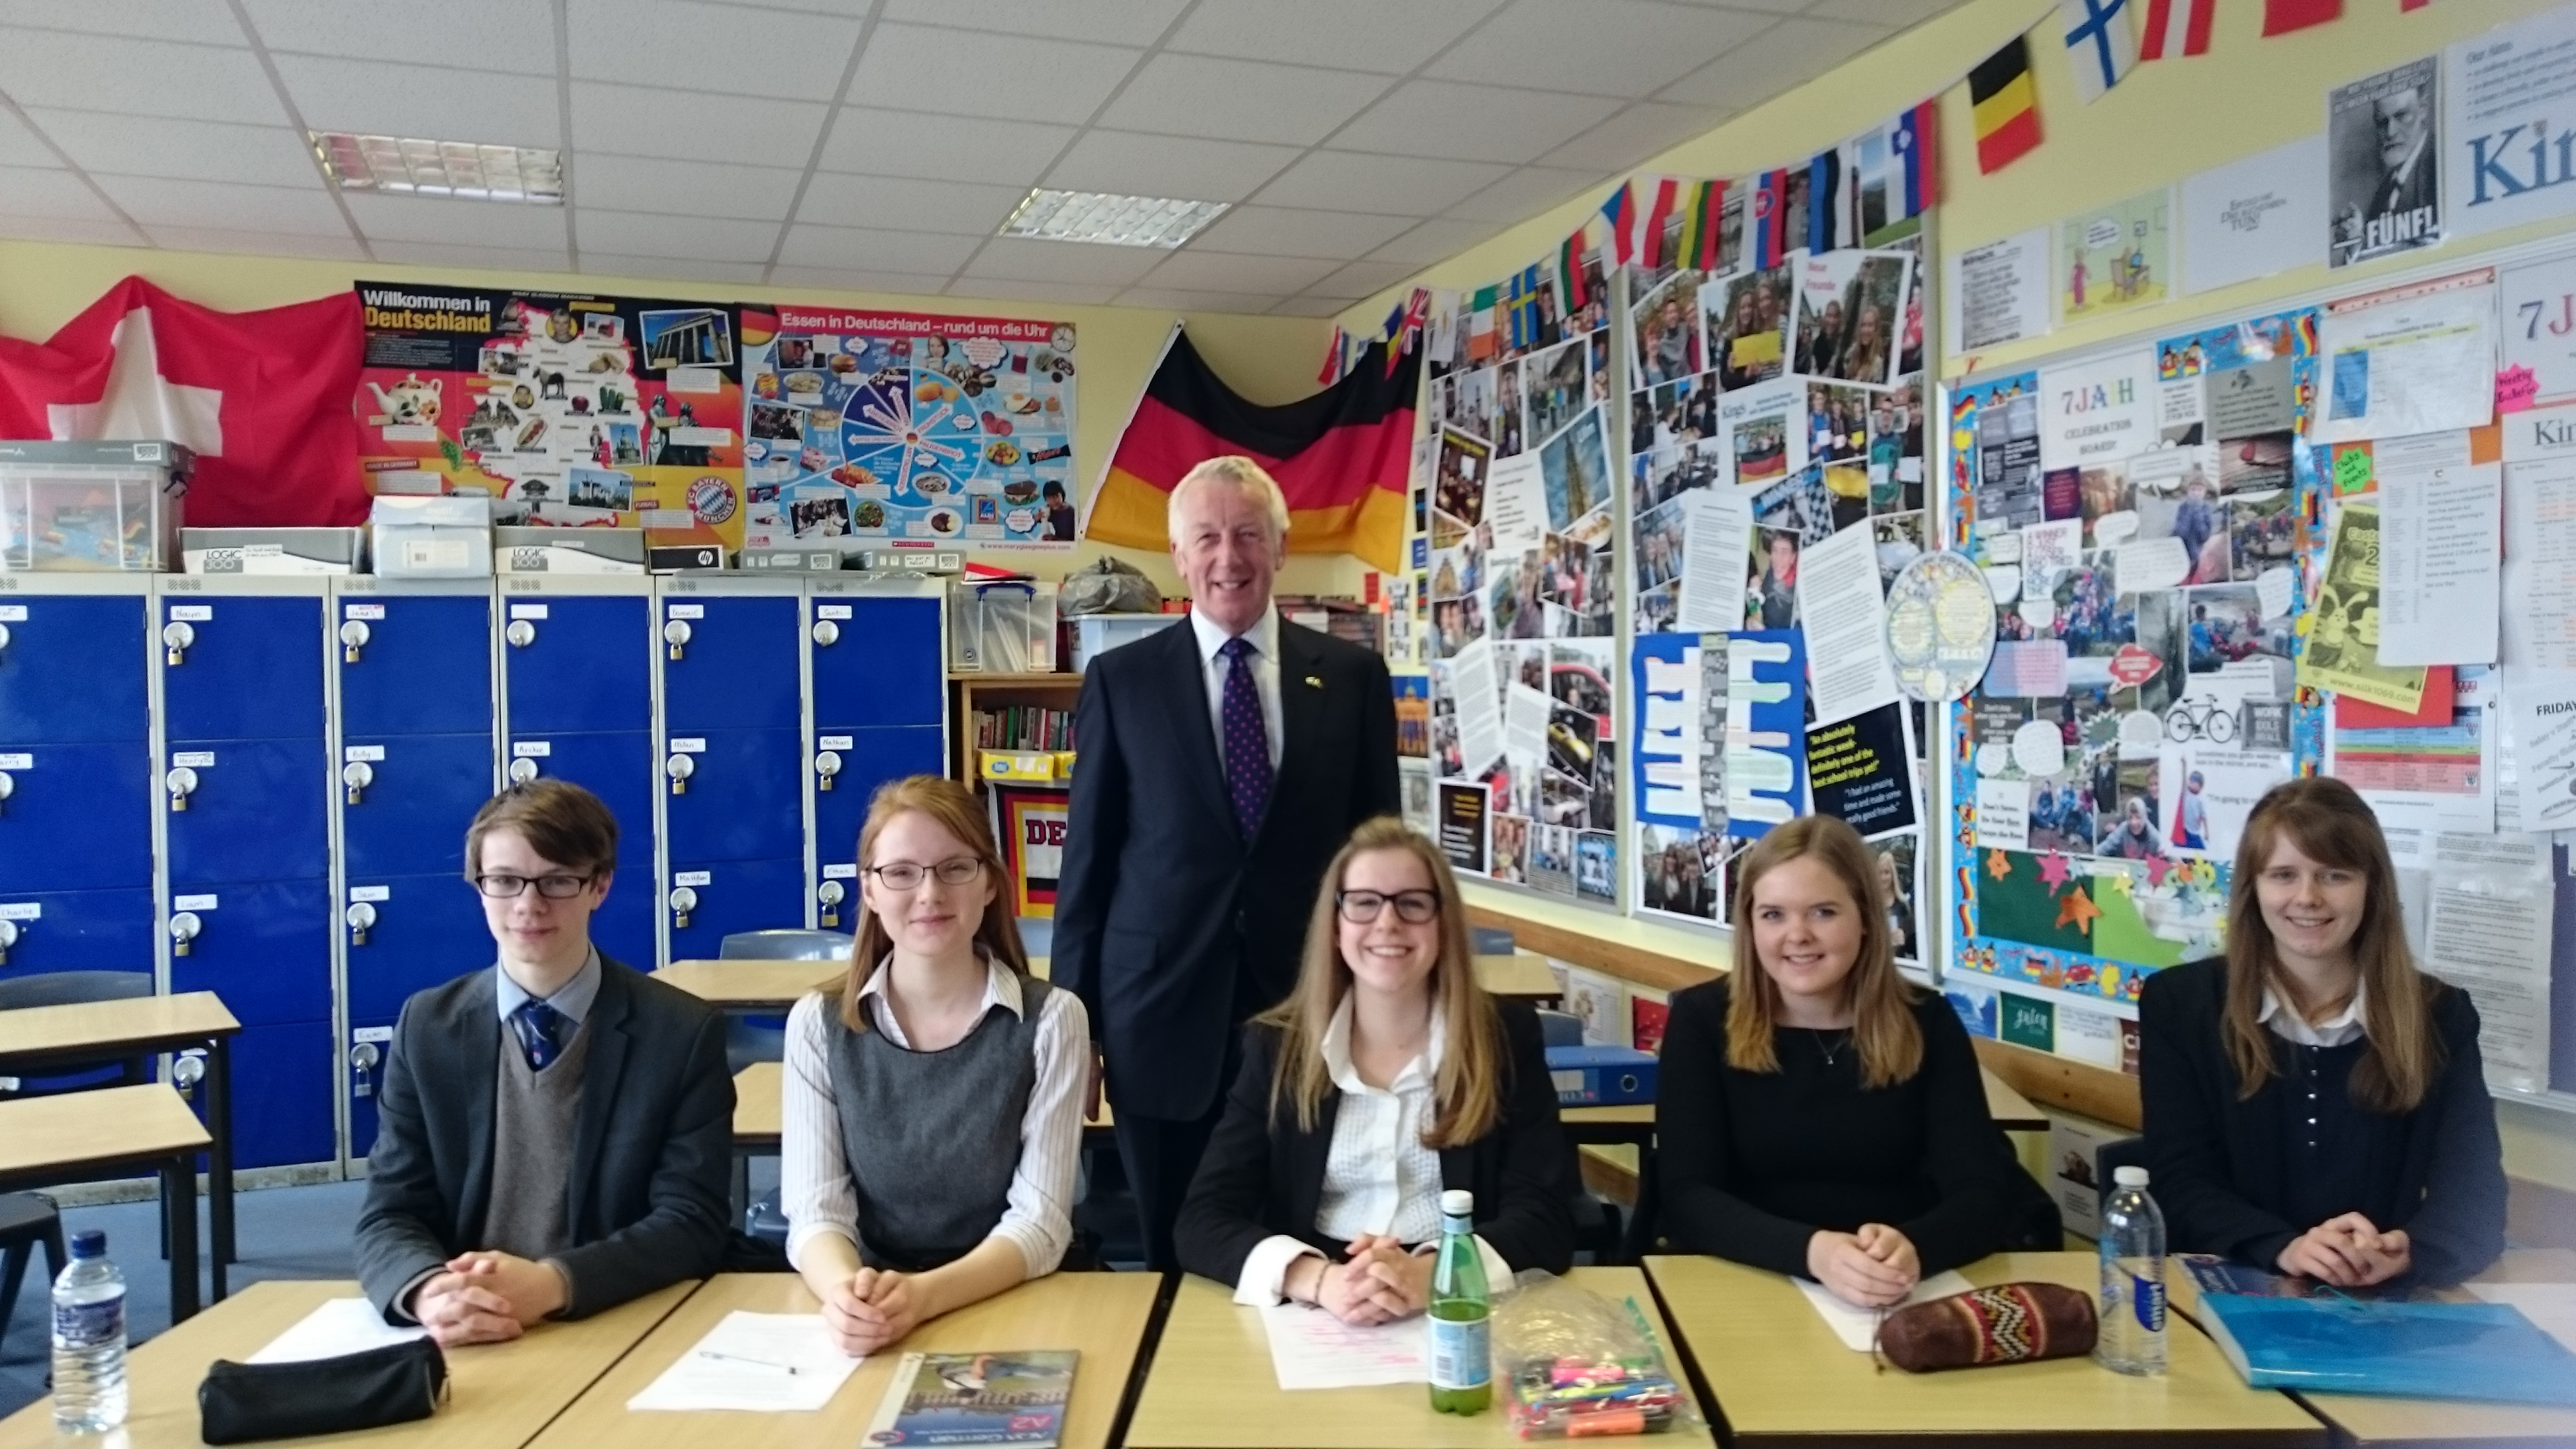 Paul Stocker and pupils from King's School Macclesfield